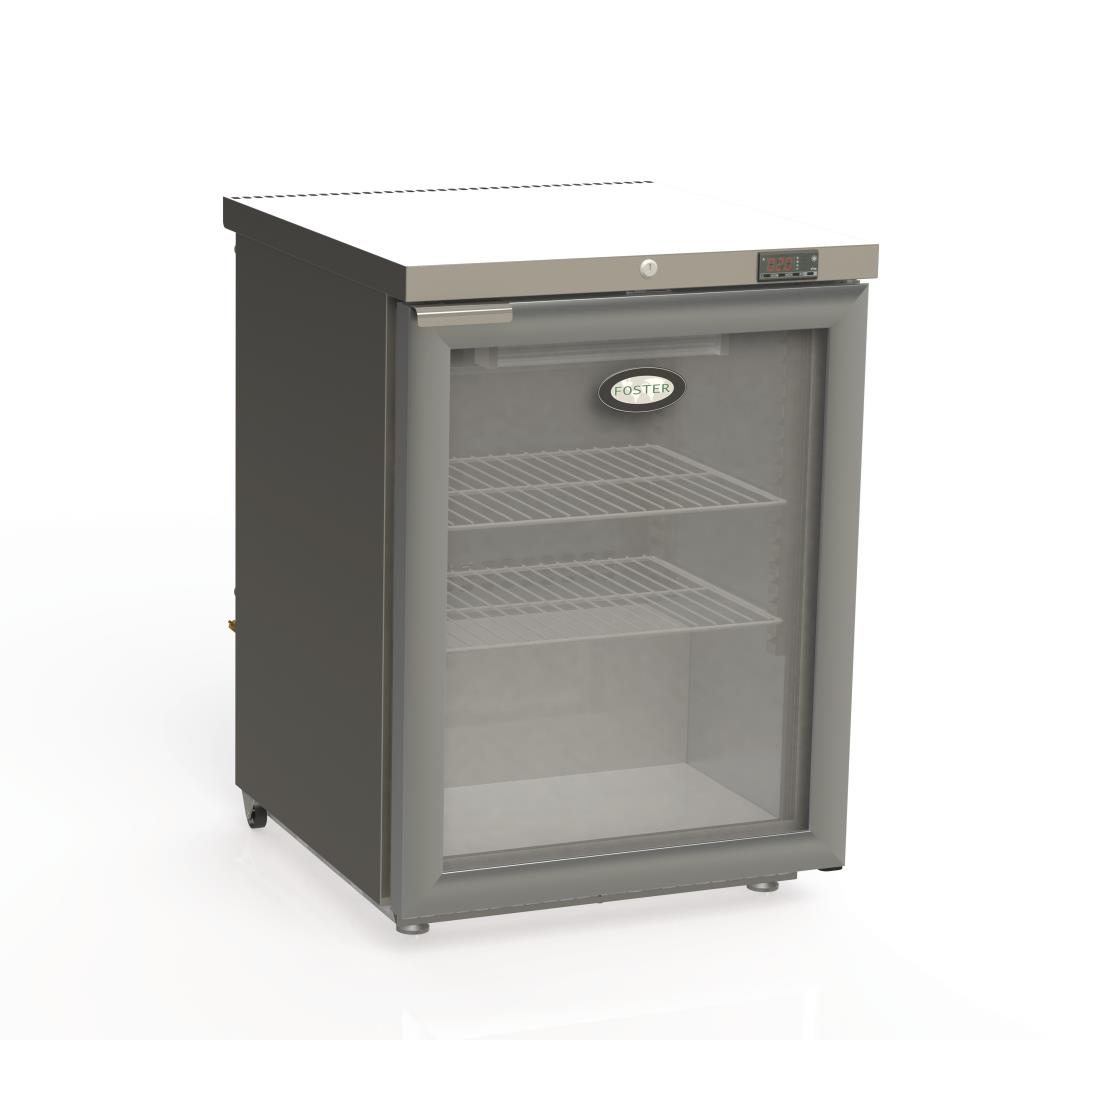 Foster 1 Glass Door 150Ltr Under Counter Fridge HR150 13/107